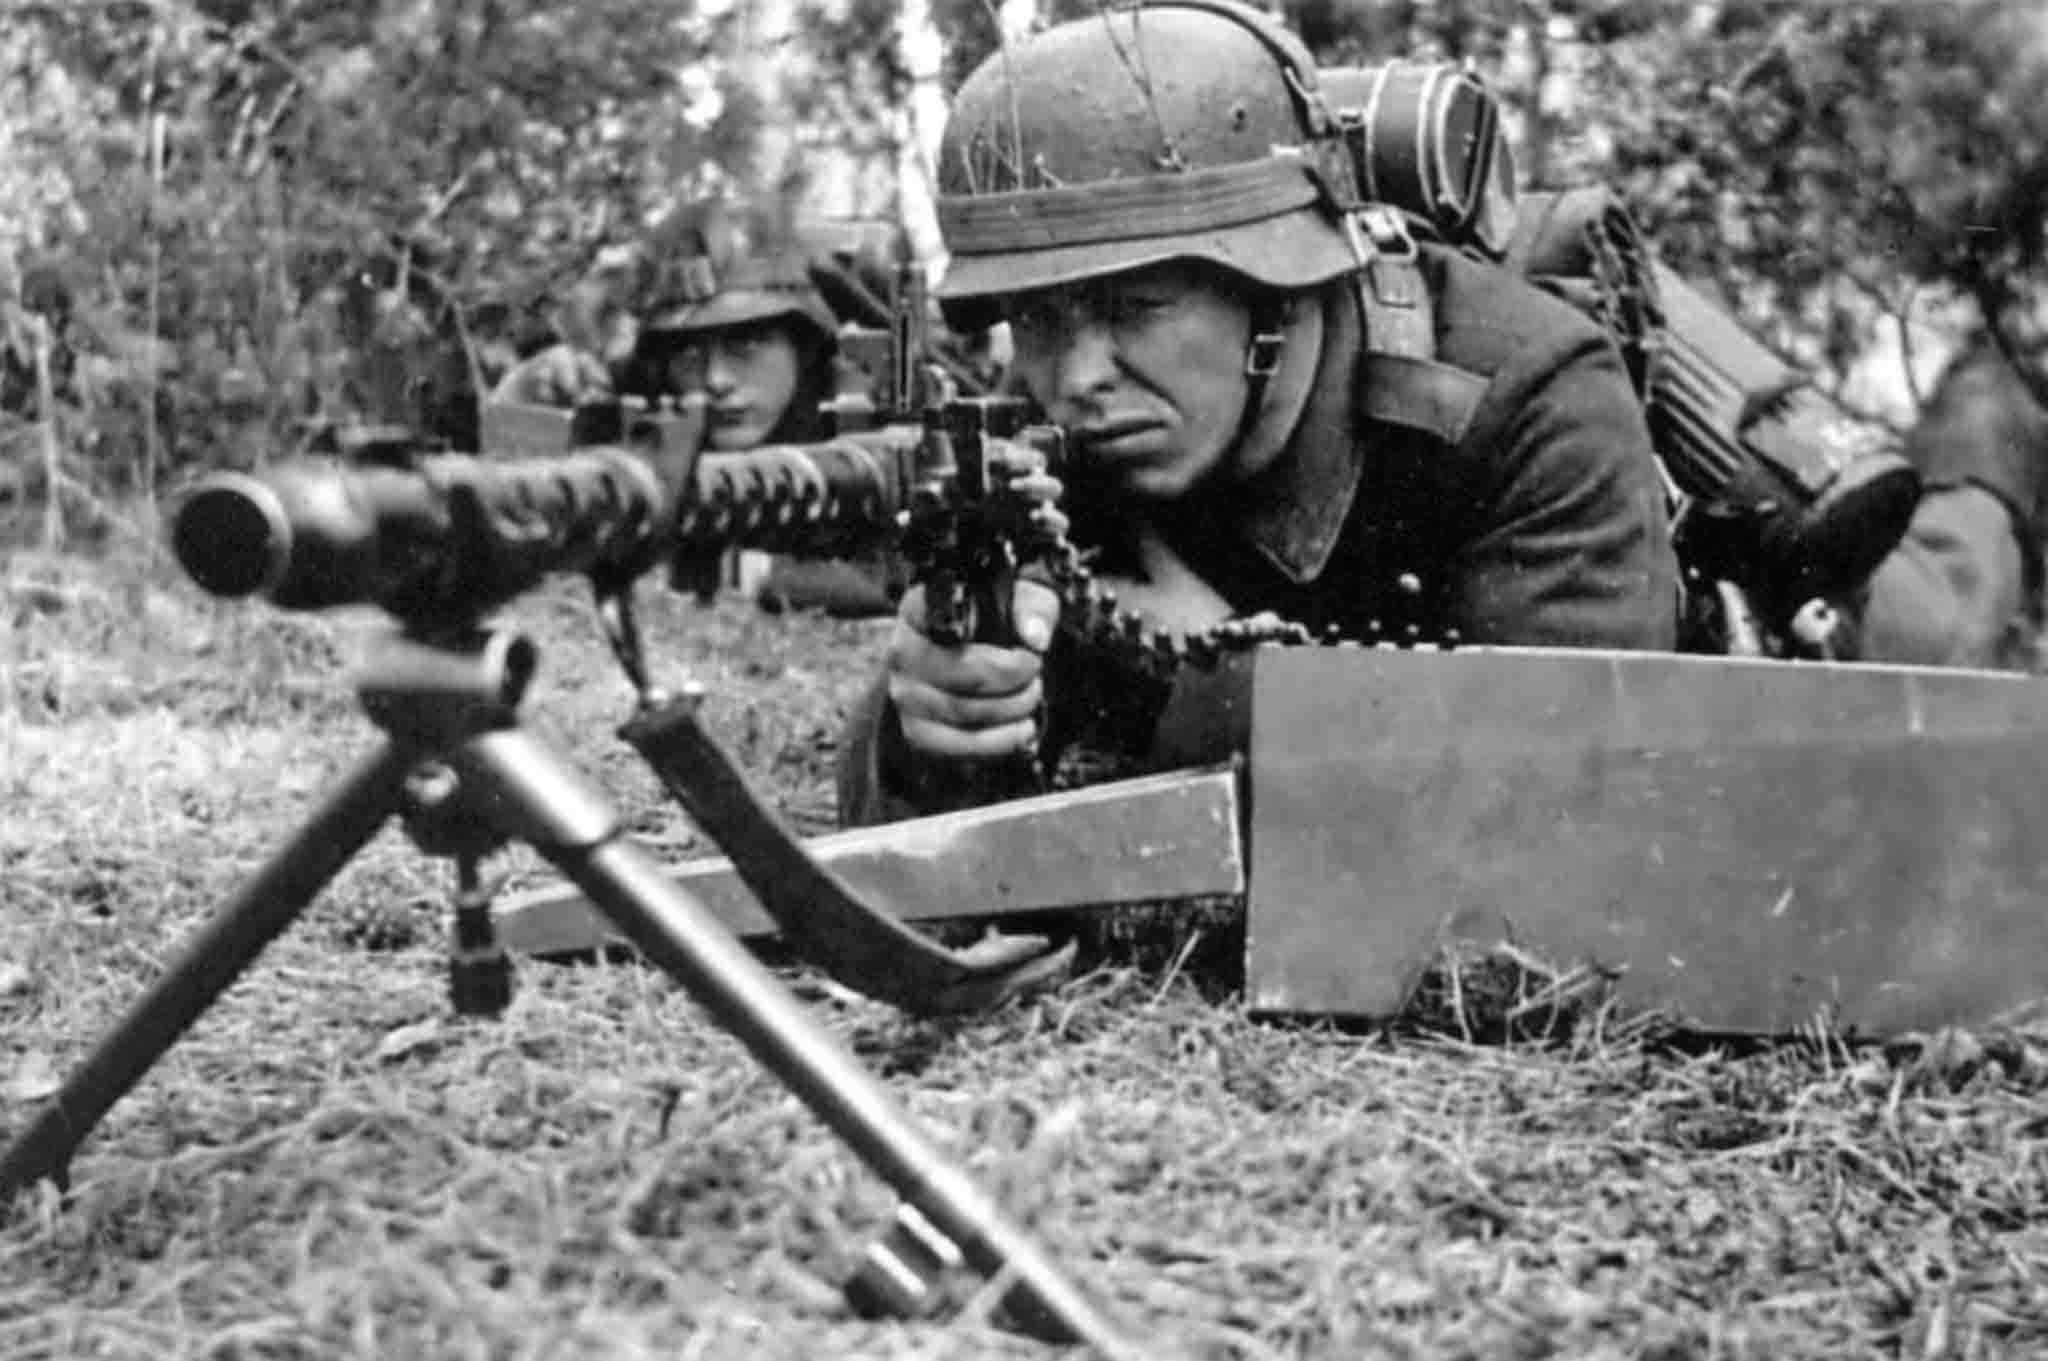 MG-34 machine gunner